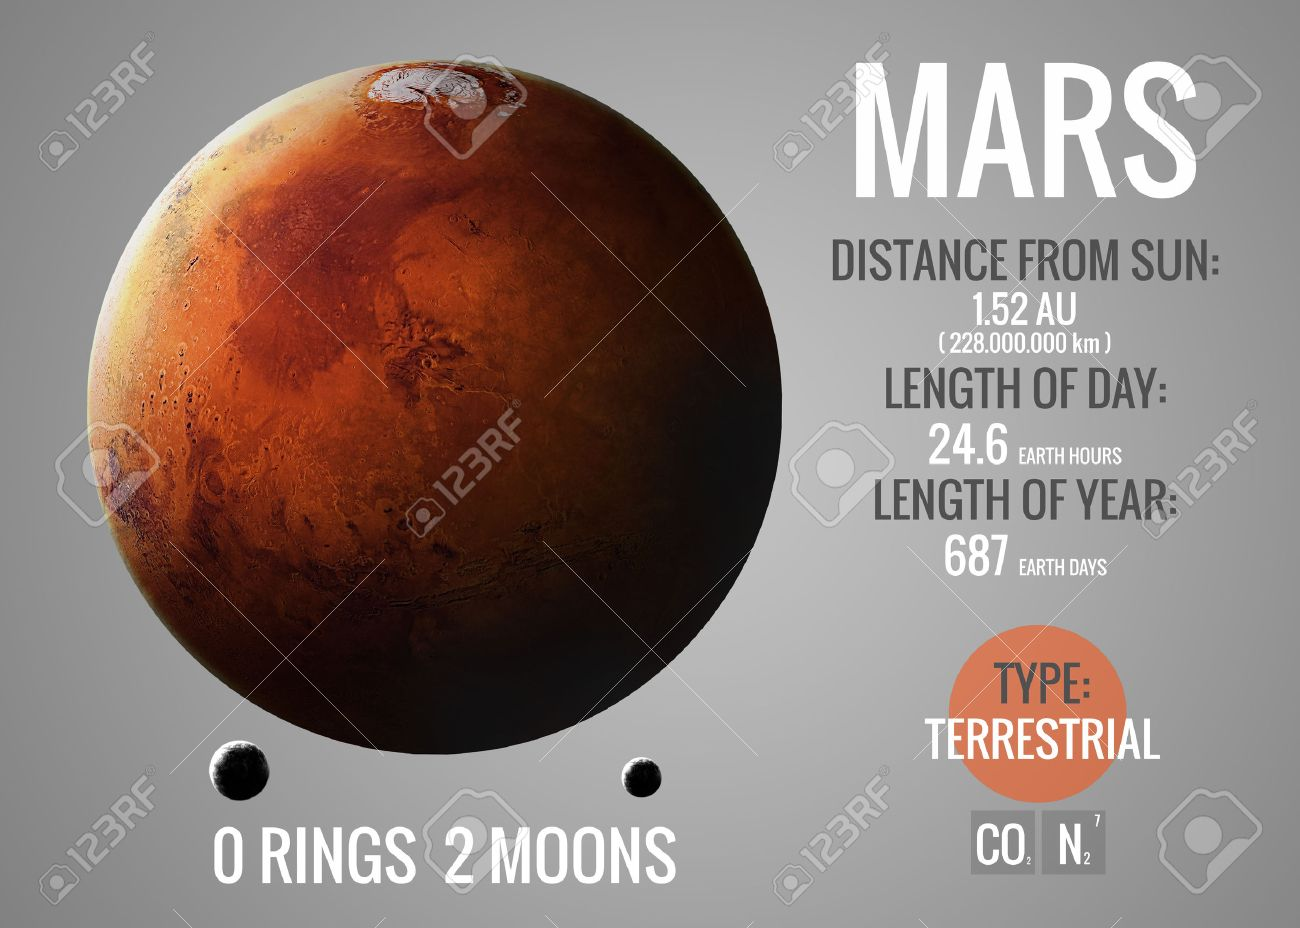 Mars one stock photos royalty free business images mars infographic image presents one of the solar system planet look and facts buycottarizona Gallery